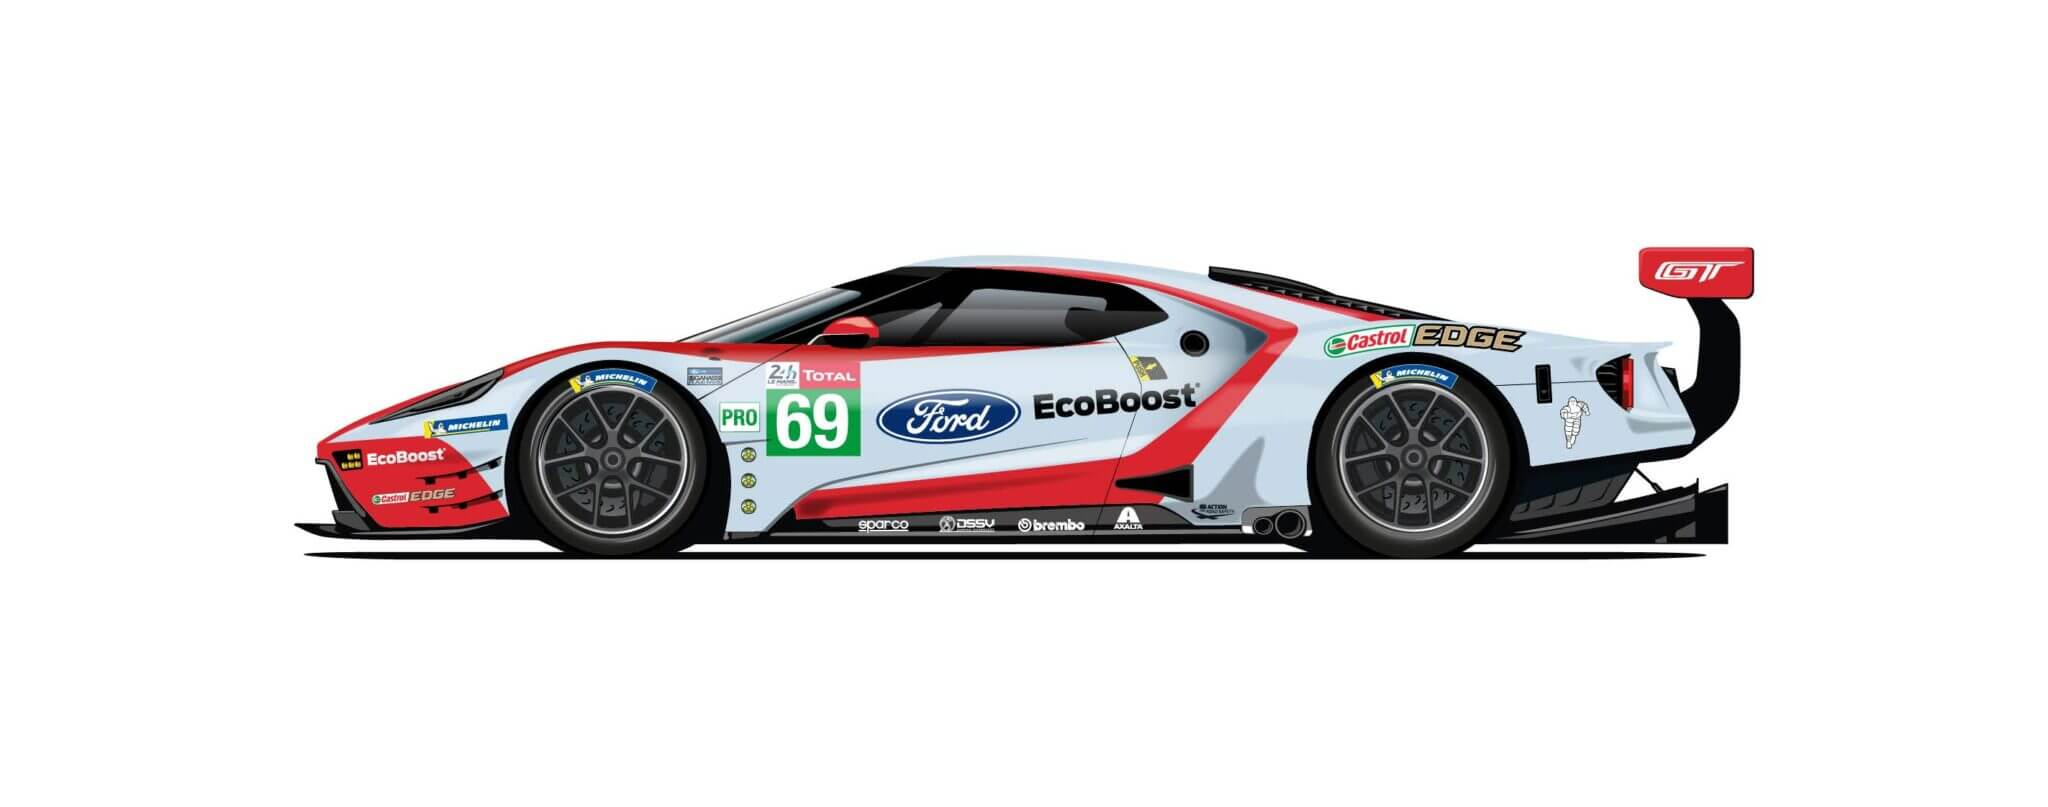 Ford Waves Goodbye To Le Mans With Four Retro Racing Liveries